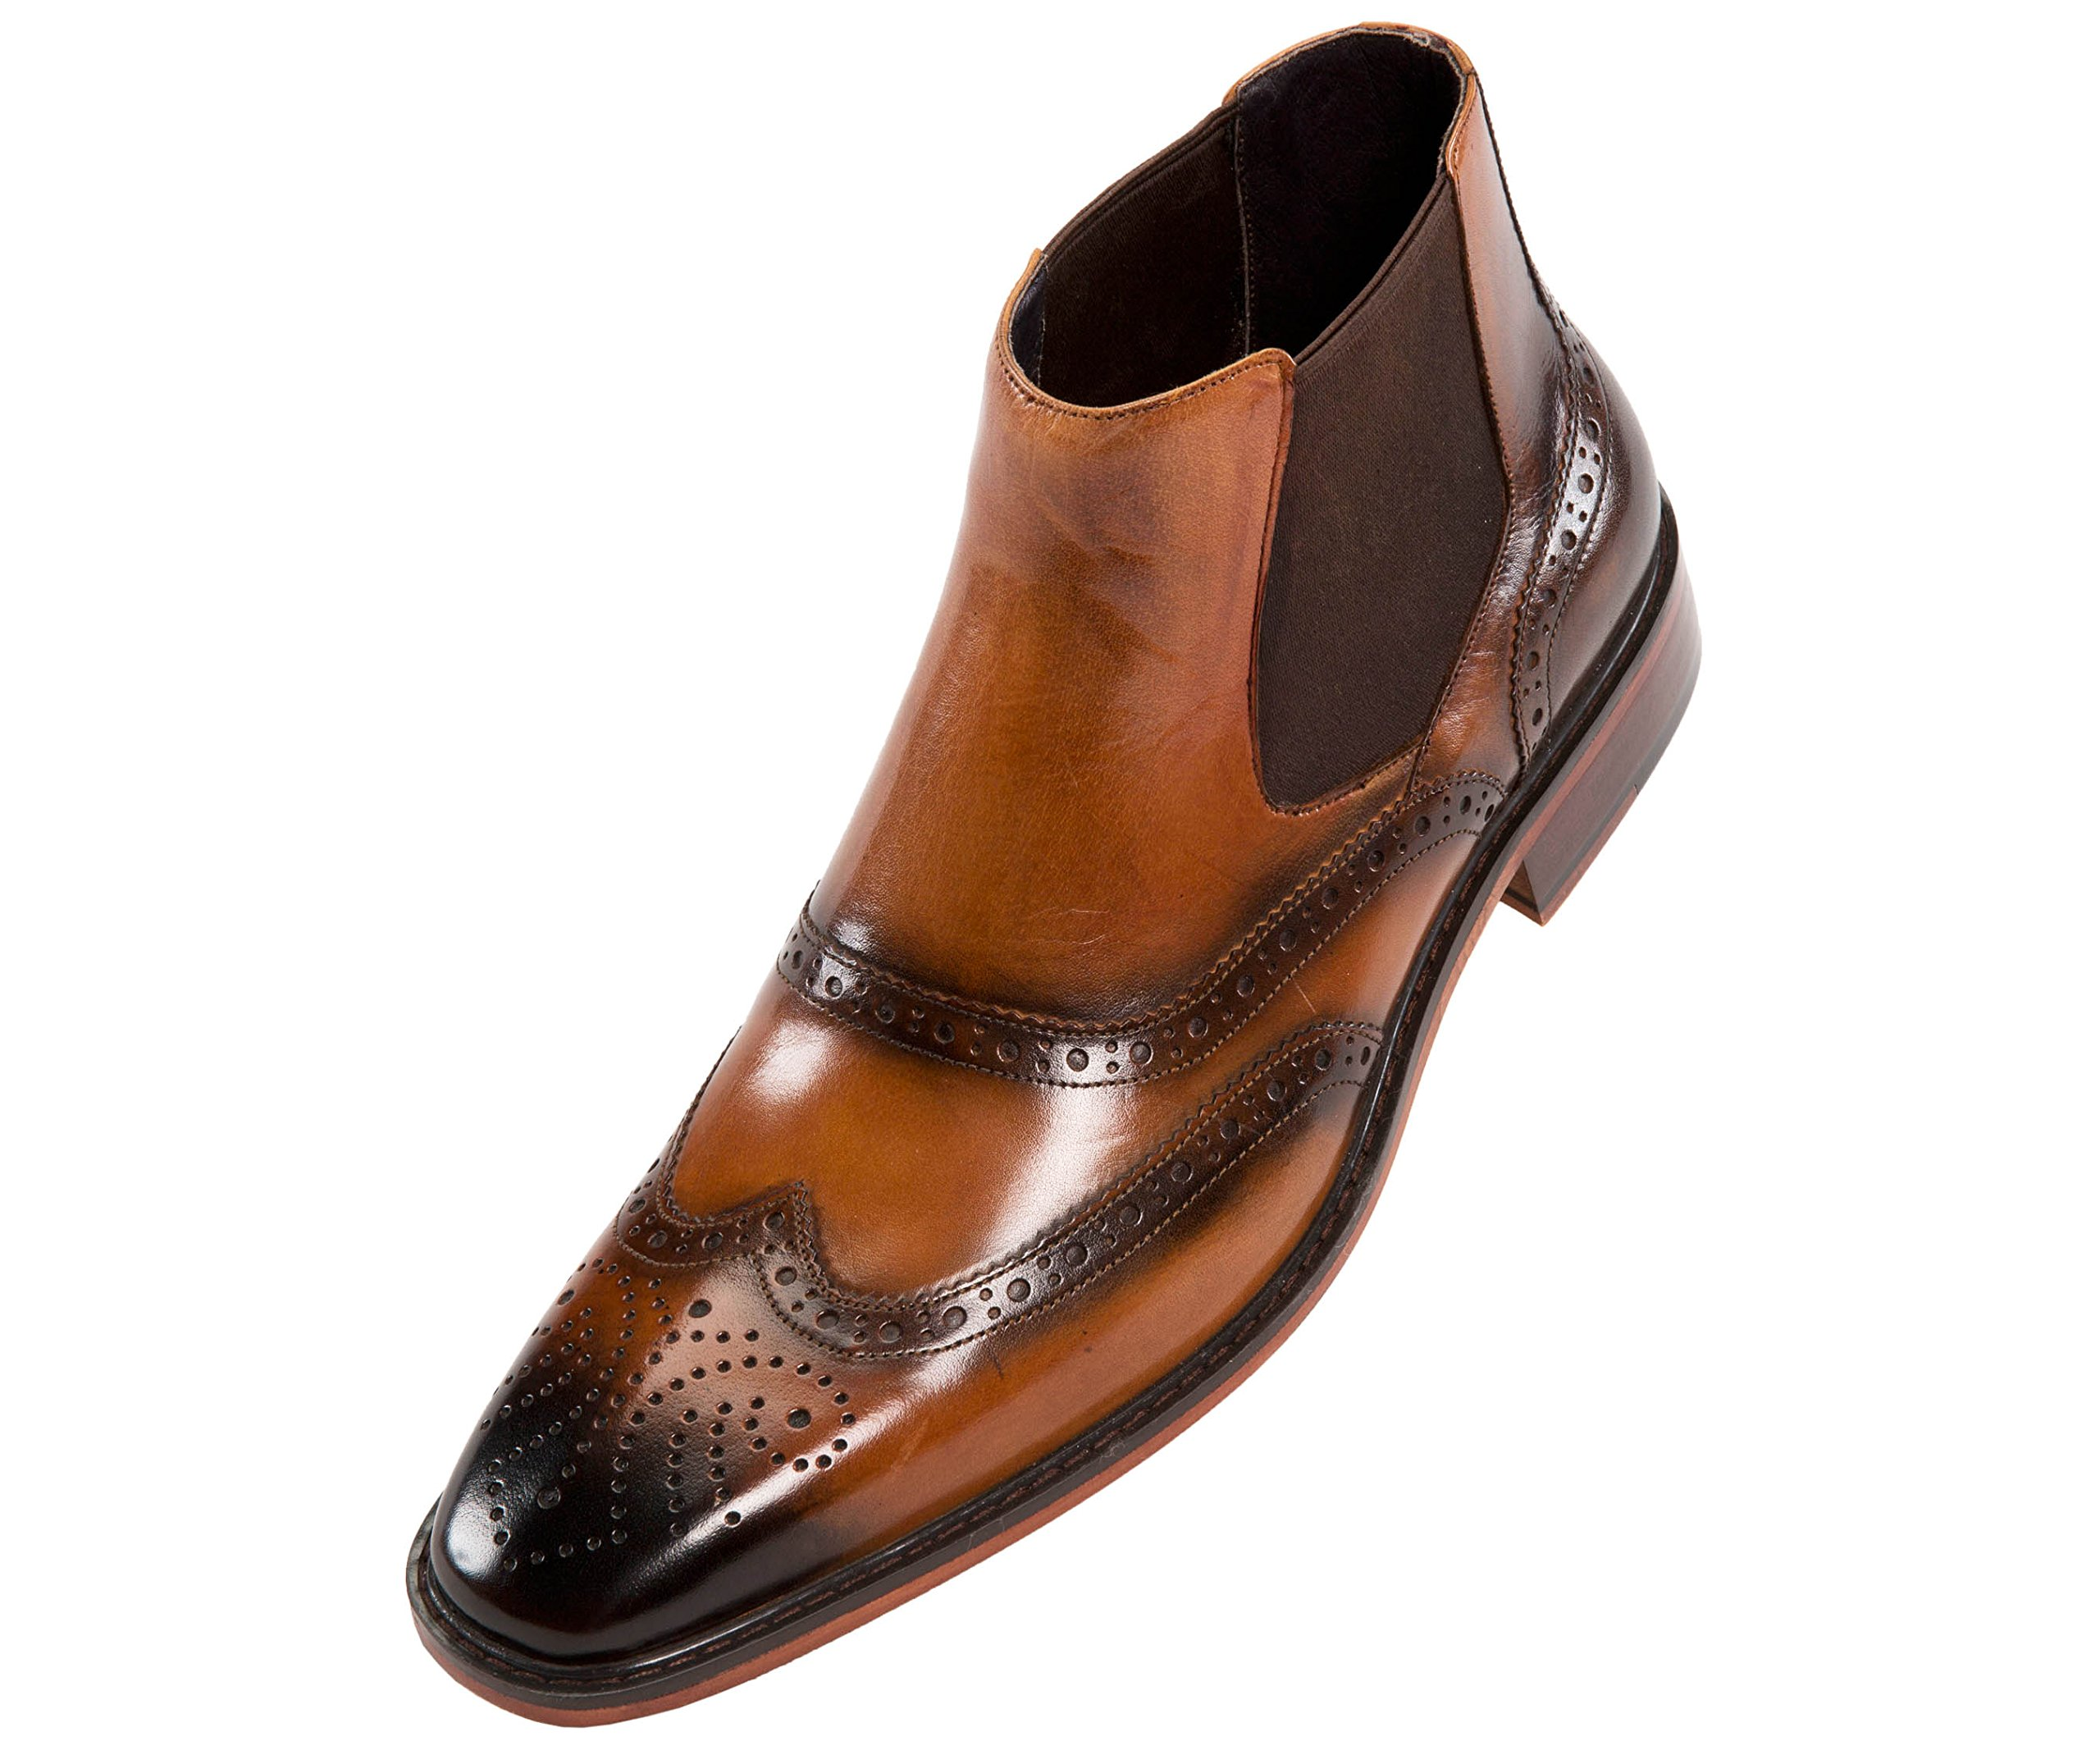 Asher Green Mens Double Gore Leather Wingtip Dress Boot, Slip-On Boot, Wood-Like Sole, Style AG2632